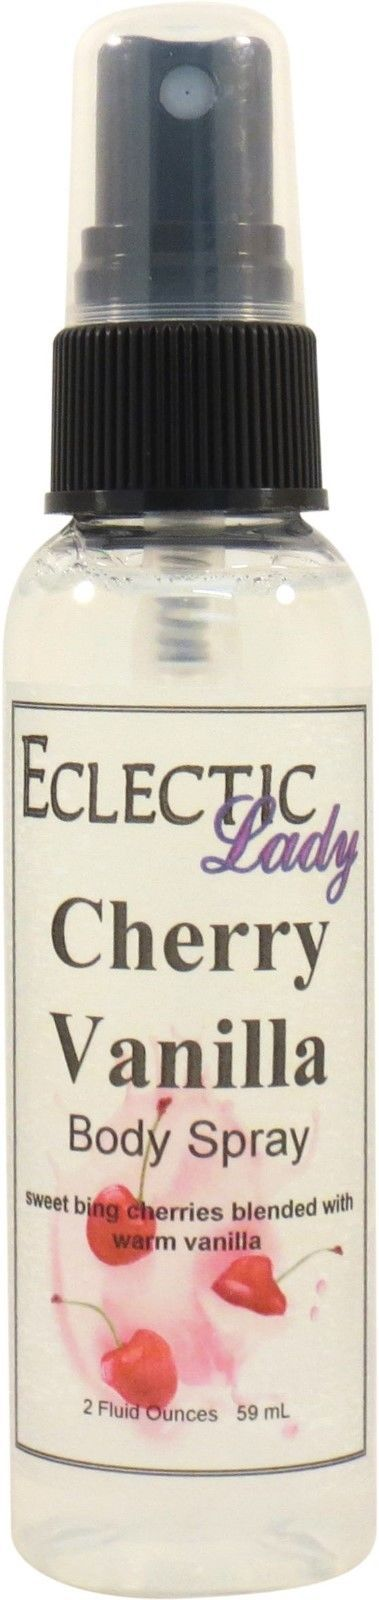 Cherry Vanilla Body Spray